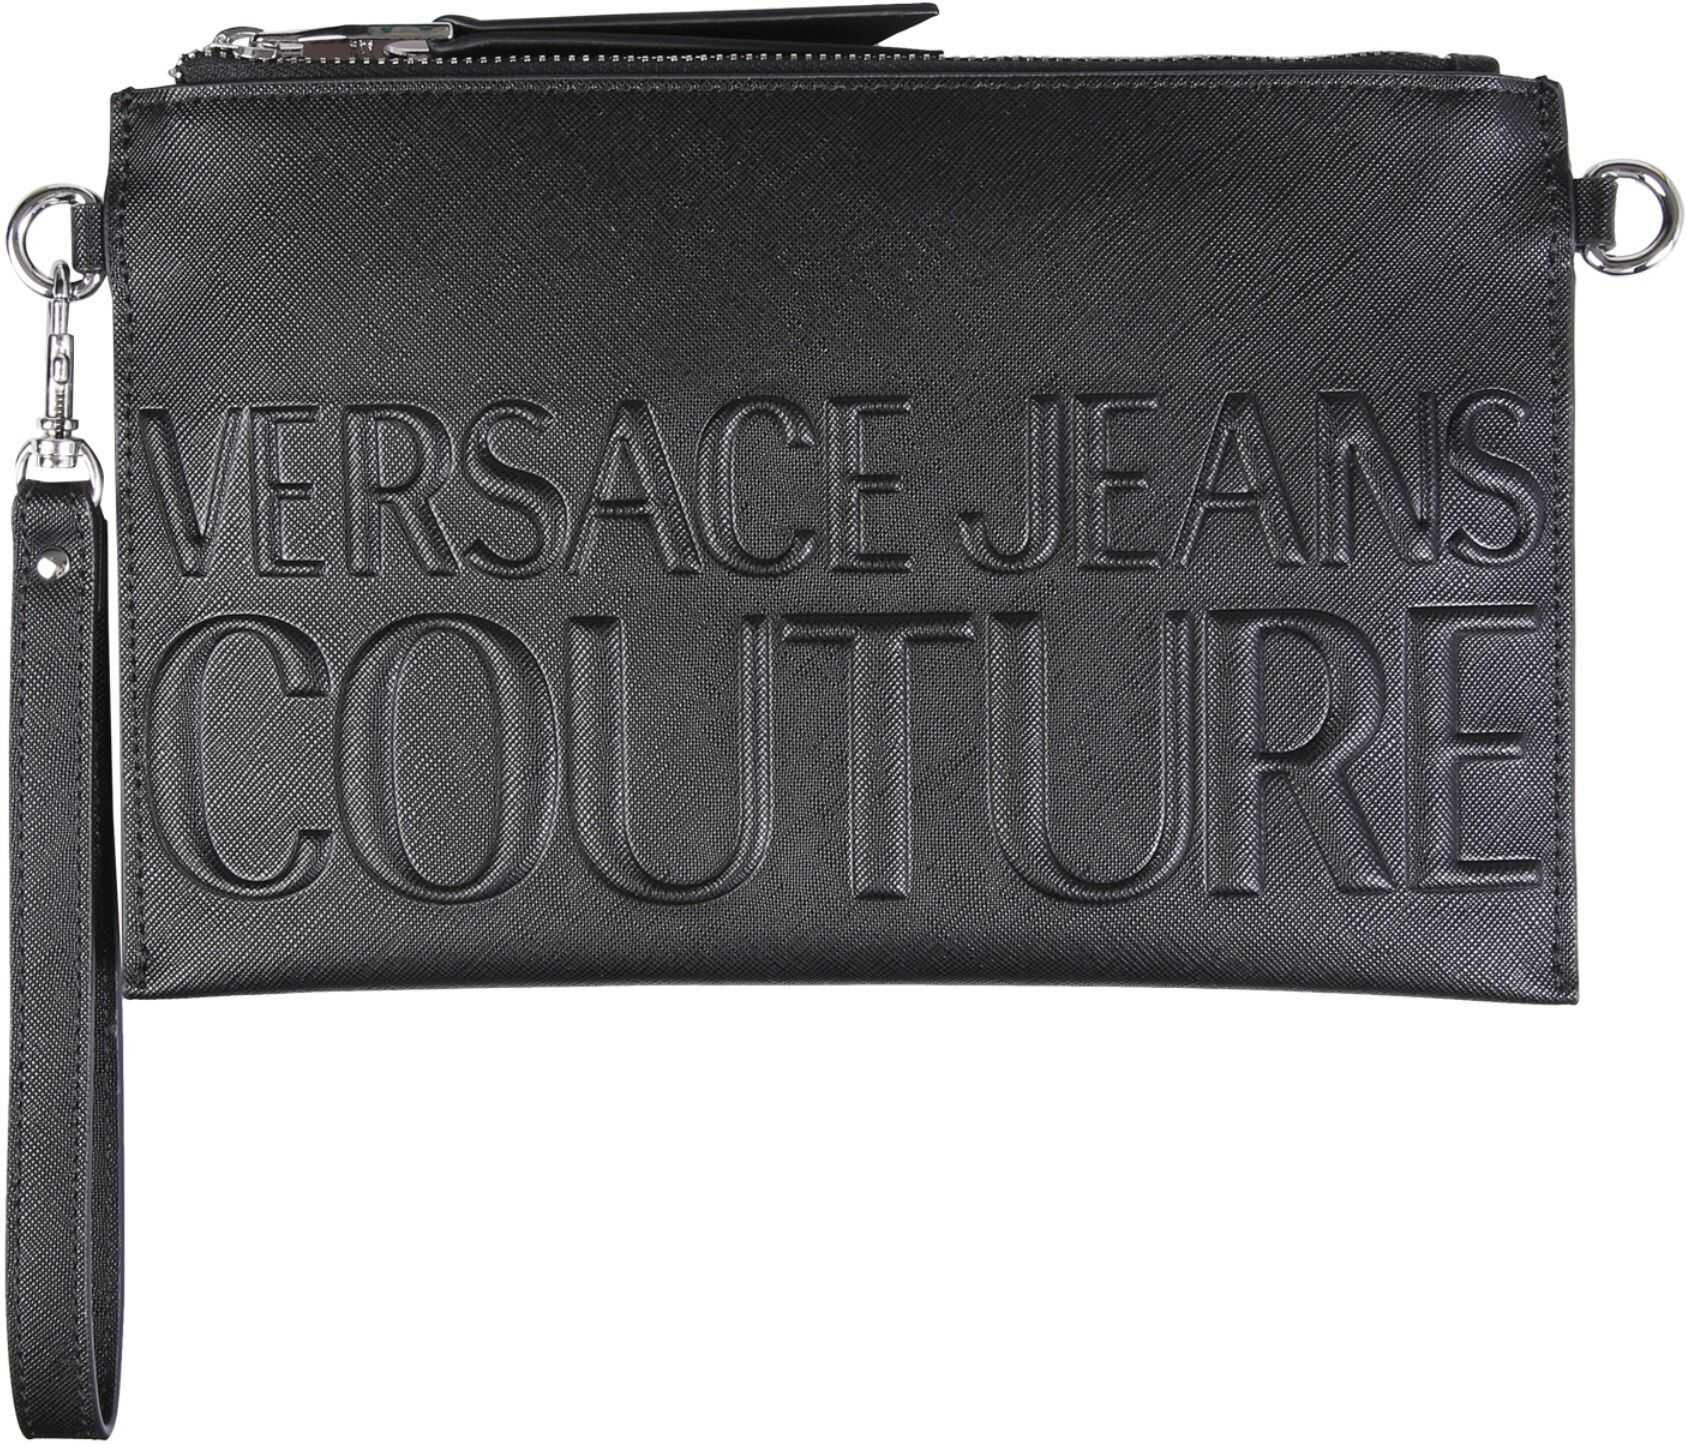 Versace Jeans Couture Clutch With Embossed Logo E1VWABRX_71882899 BLACK imagine b-mall.ro